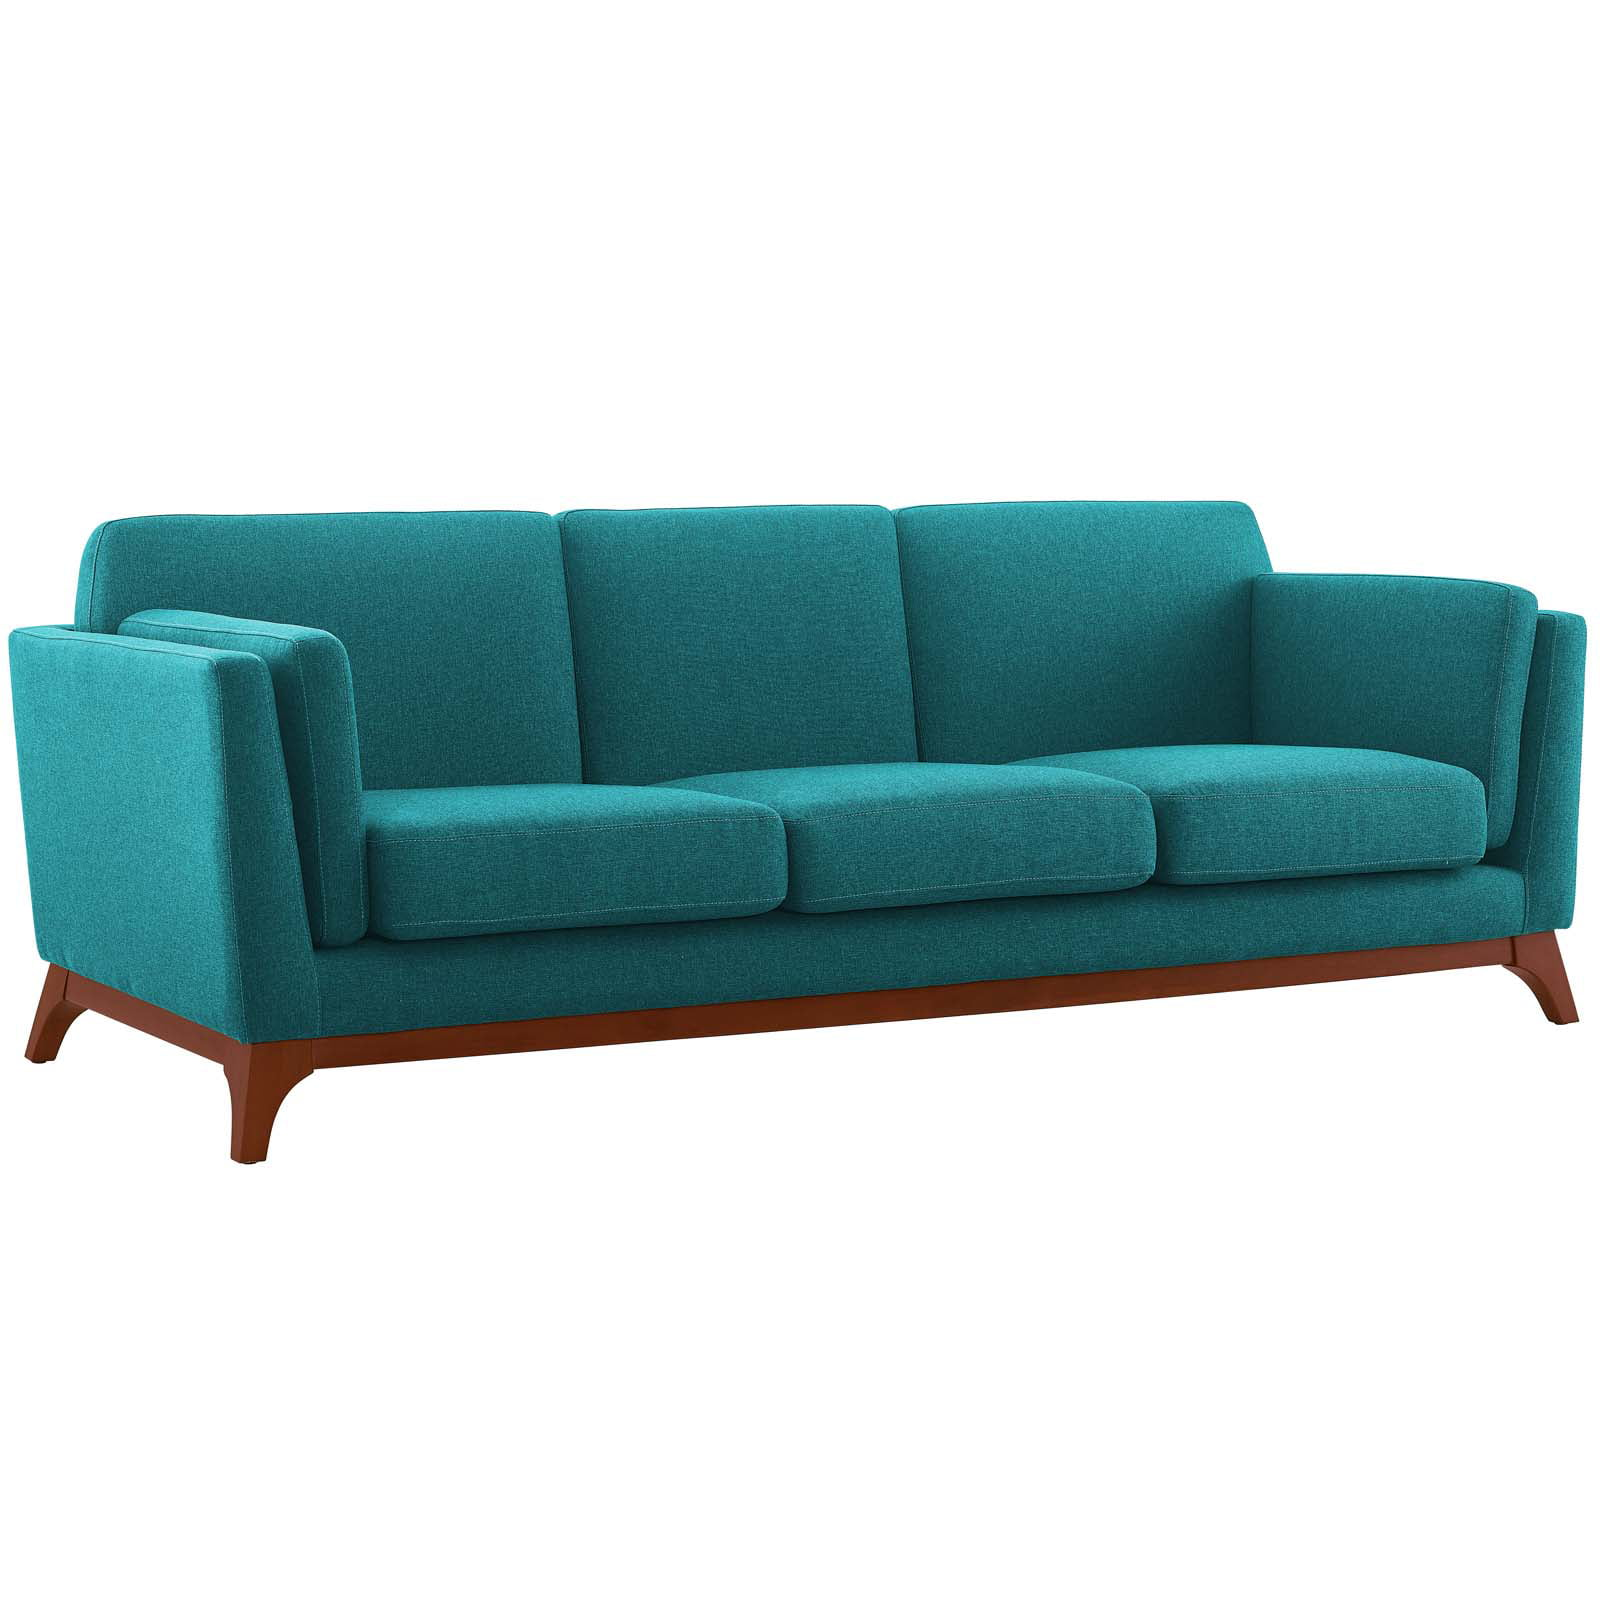 Modern Contemporary Urban Design Living Room Lounge Club Lobby Sofa Fabric Aqua Blue Walmart Com Walmart Com